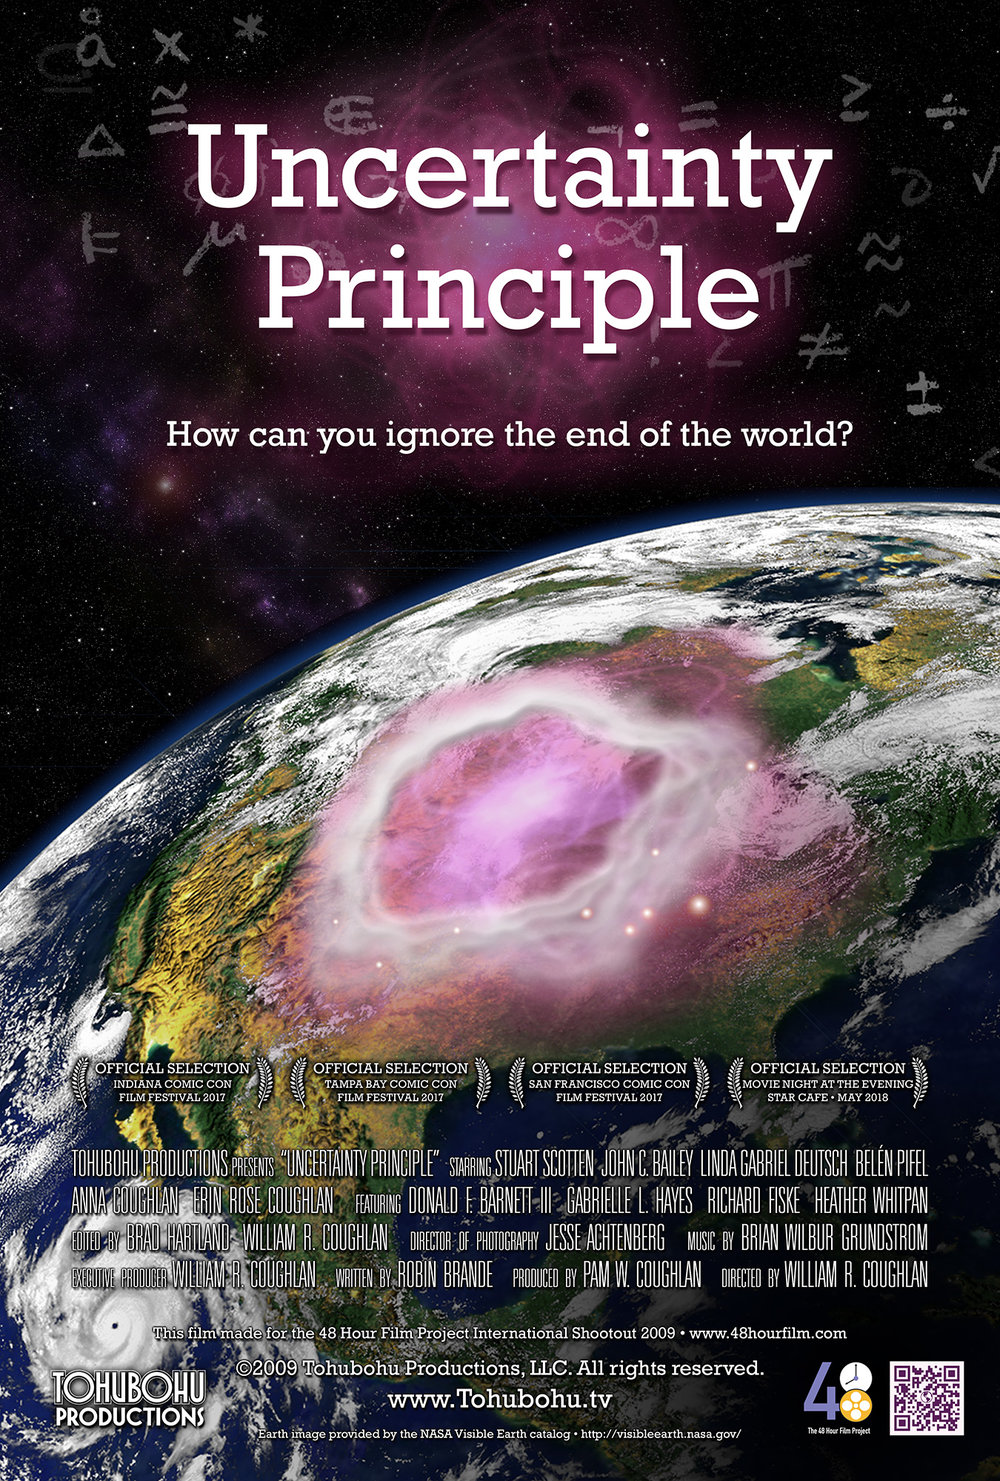 "Uncertainty Principle - 2009 · 7:19 · written by Robin Brande · produced by Pam W. Coughlan · directed by William R. CoughlanDire warnings of immminent disaster have proven justified, as global destruction begins raining down from purple-hued skies. A Washington family struggles to cope with the advancing armageddon until a lone physicist proposes an unorthodox course of action.On the strength of Tohubohu's performance in the 2009 48 Hour Film Project, we were invited to participate in the 2009 International Shootout, along with 53 other teams from around the globe. Bringing back the core creative team from ""Please Forward,"" we produced ""Uncertainty Principle"" from December 4th through the 7th, 2009, structured around the required theme ""the end of the world."""